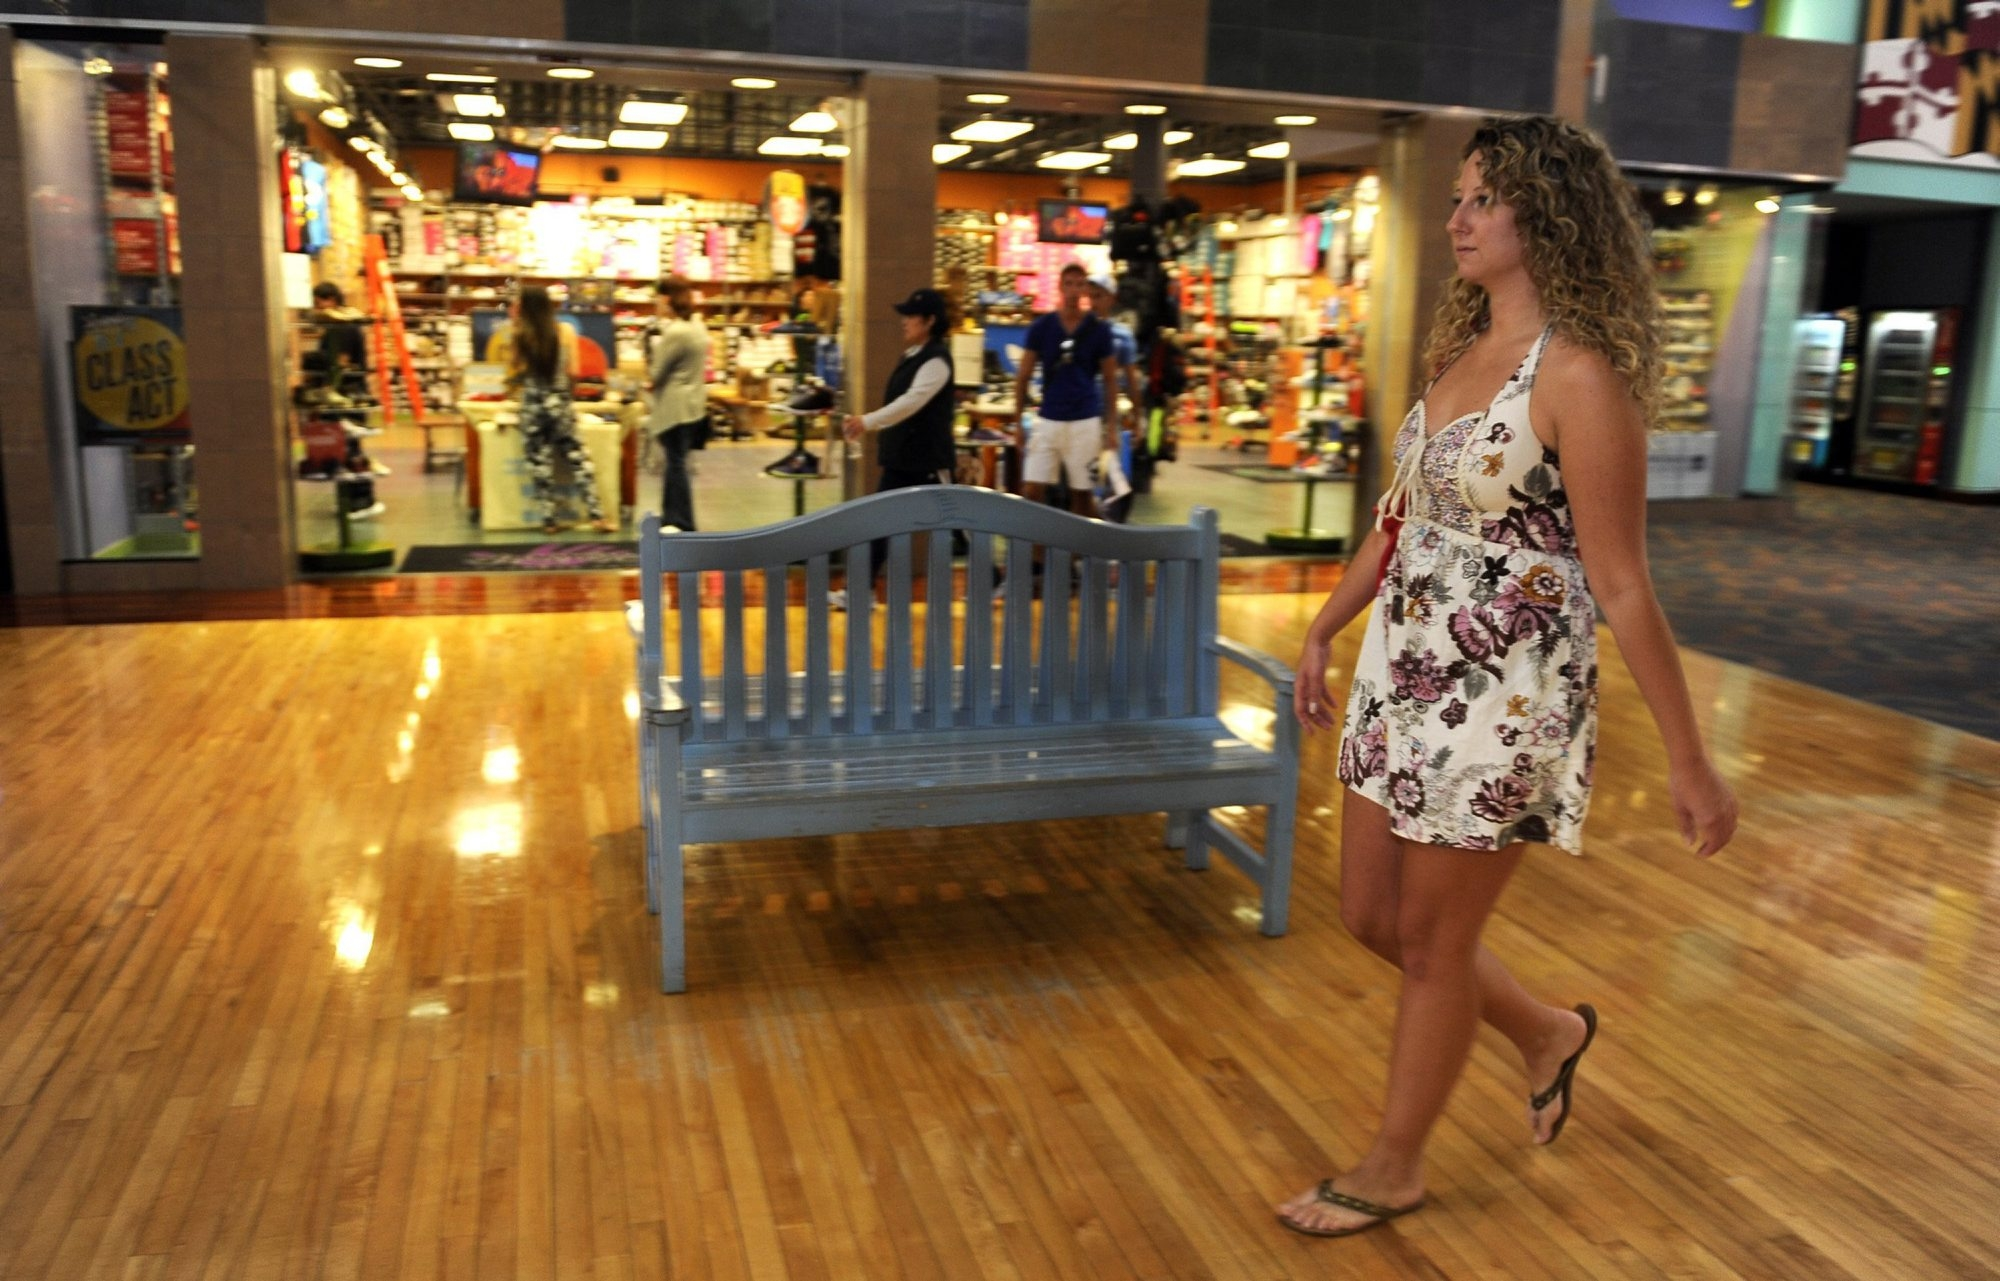 Liz DeRubertis, 26, strolls through the Arundel Mills Mall in Hanover, Md. Generation Y shoppers show a preference for the brick-and-mortar experience.